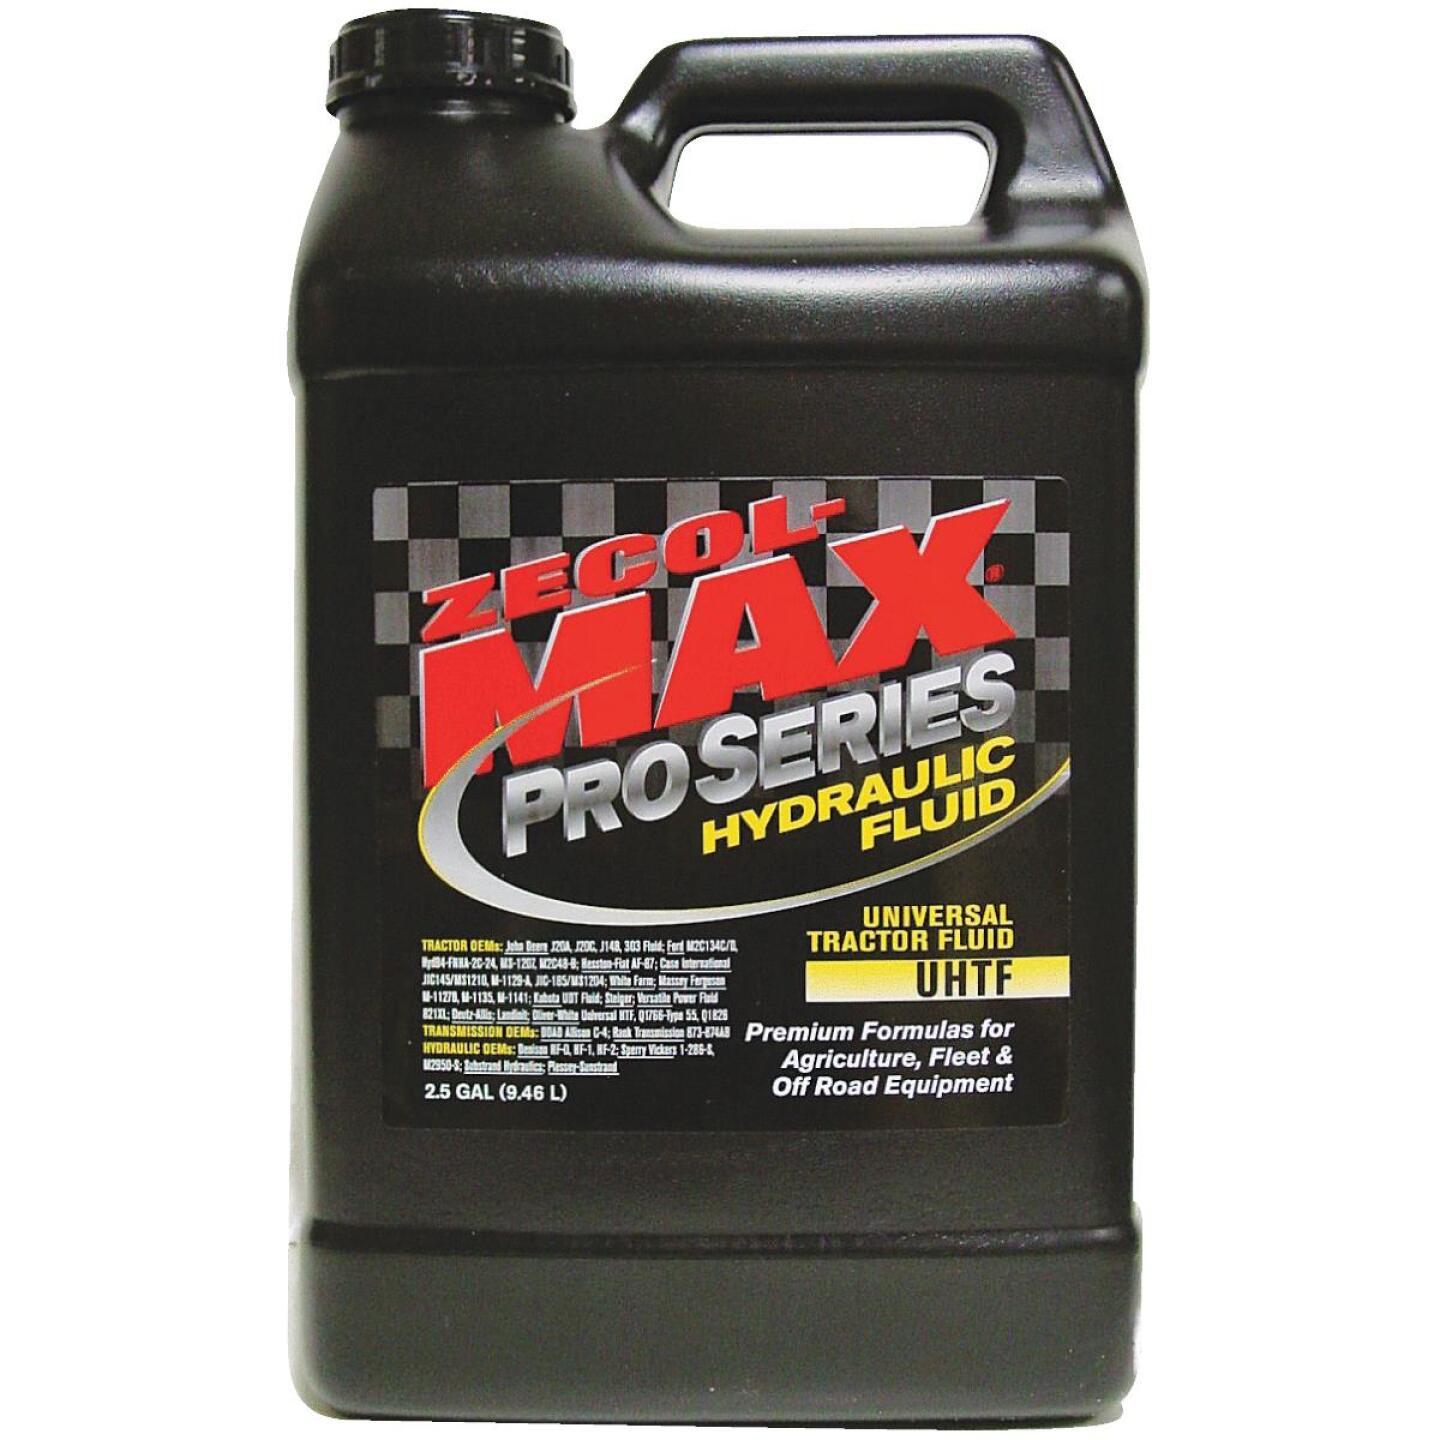 Zecol Max Pro Series 2-1/2 Gal. 10W Hydraulic Oil Image 1